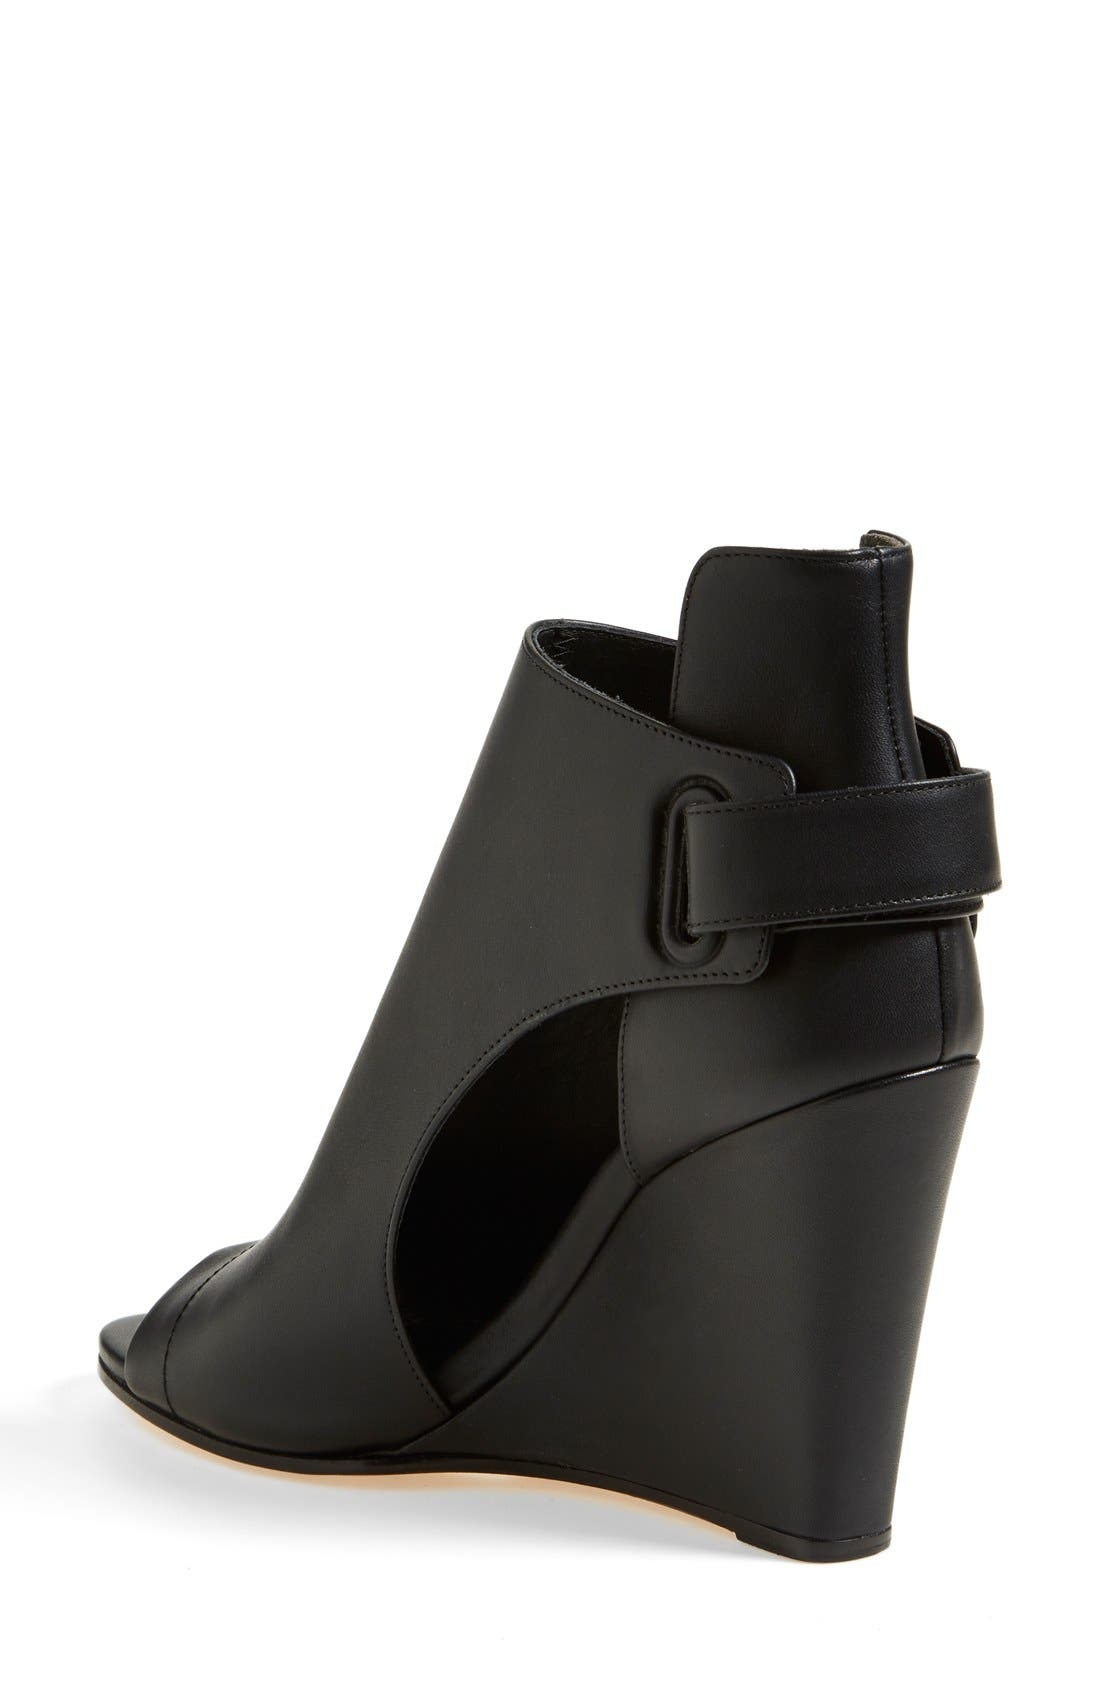 'Katia' Leather Wedge Bootie,                             Alternate thumbnail 5, color,                             001